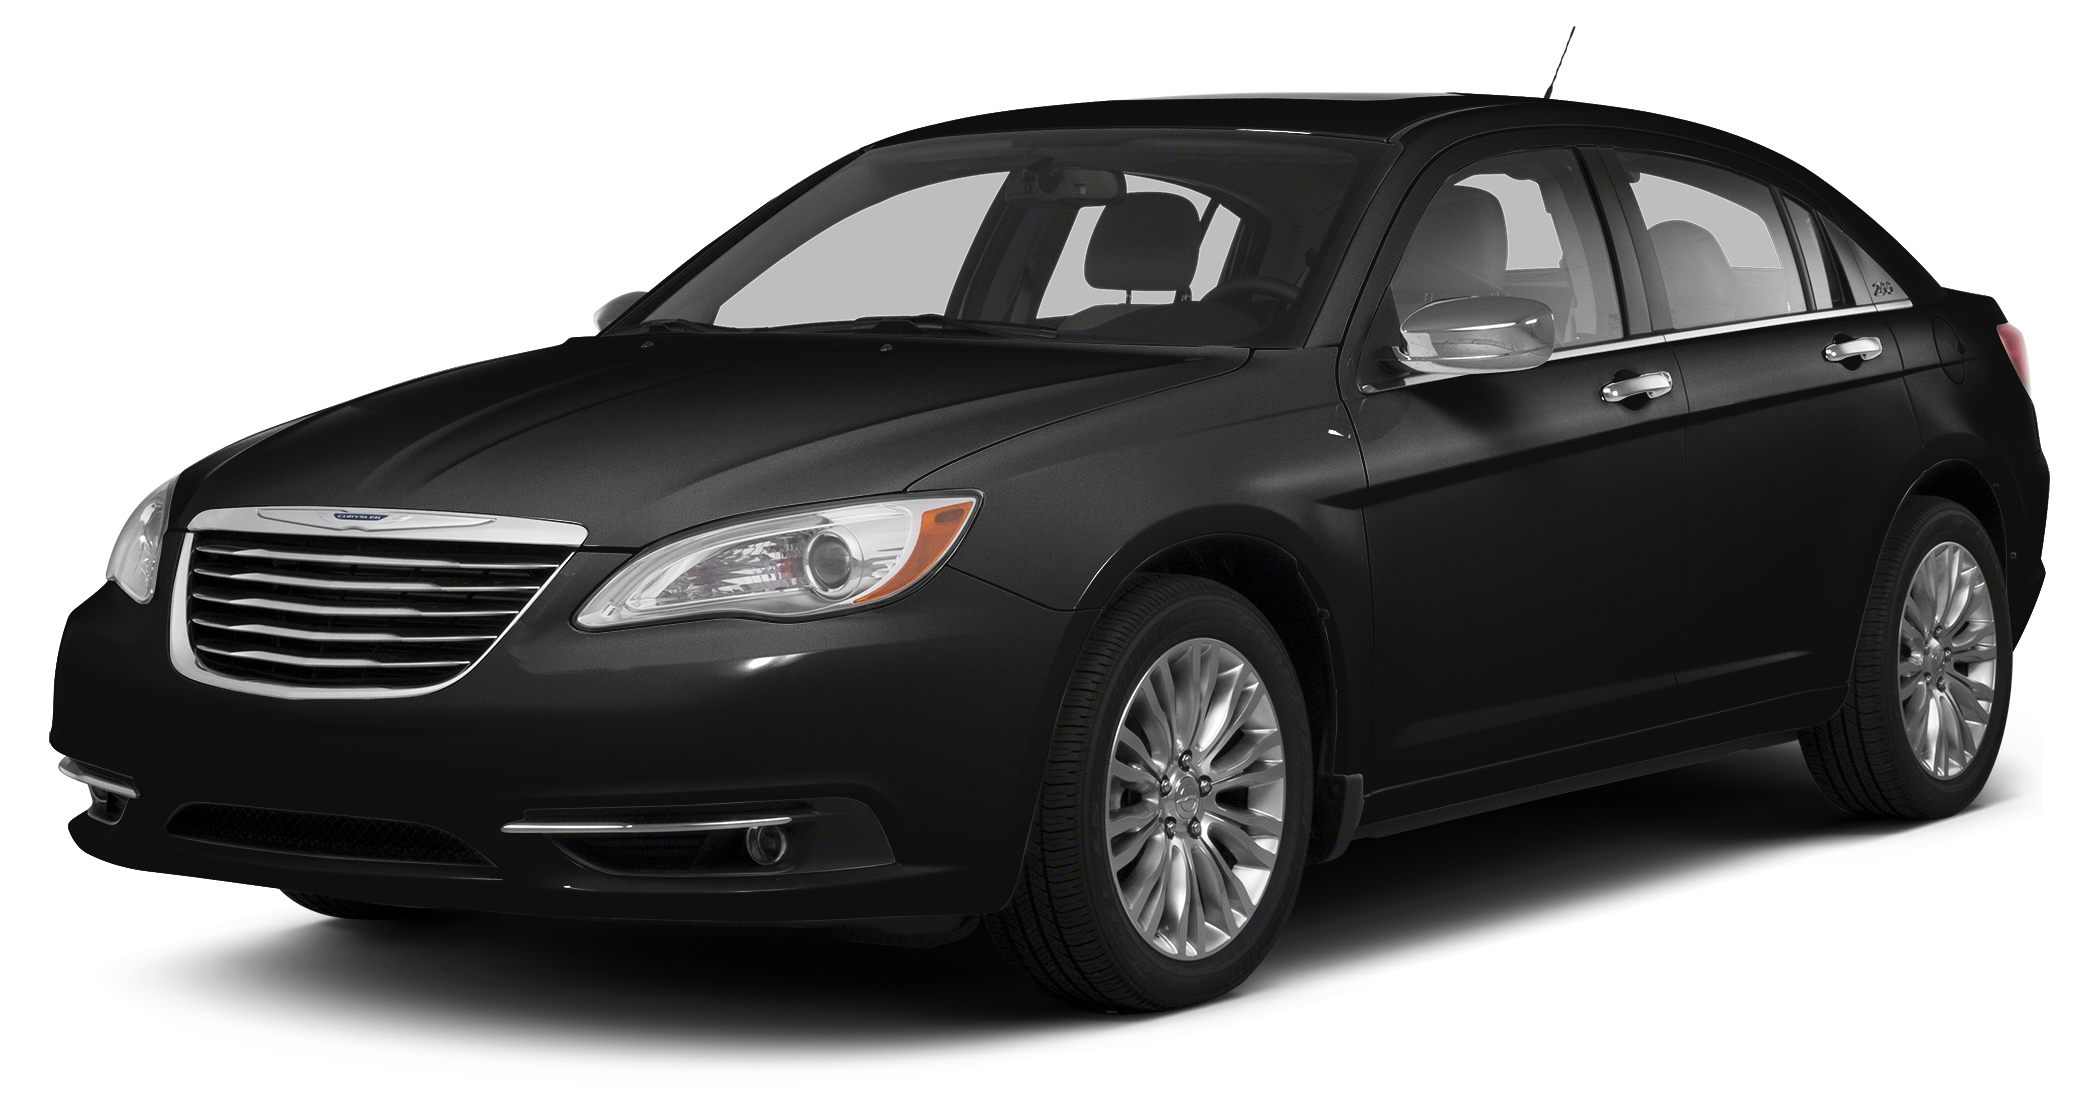 2013 Chrysler 200 Limited See what we have to offer Hear about the Motors NW difference Feel com